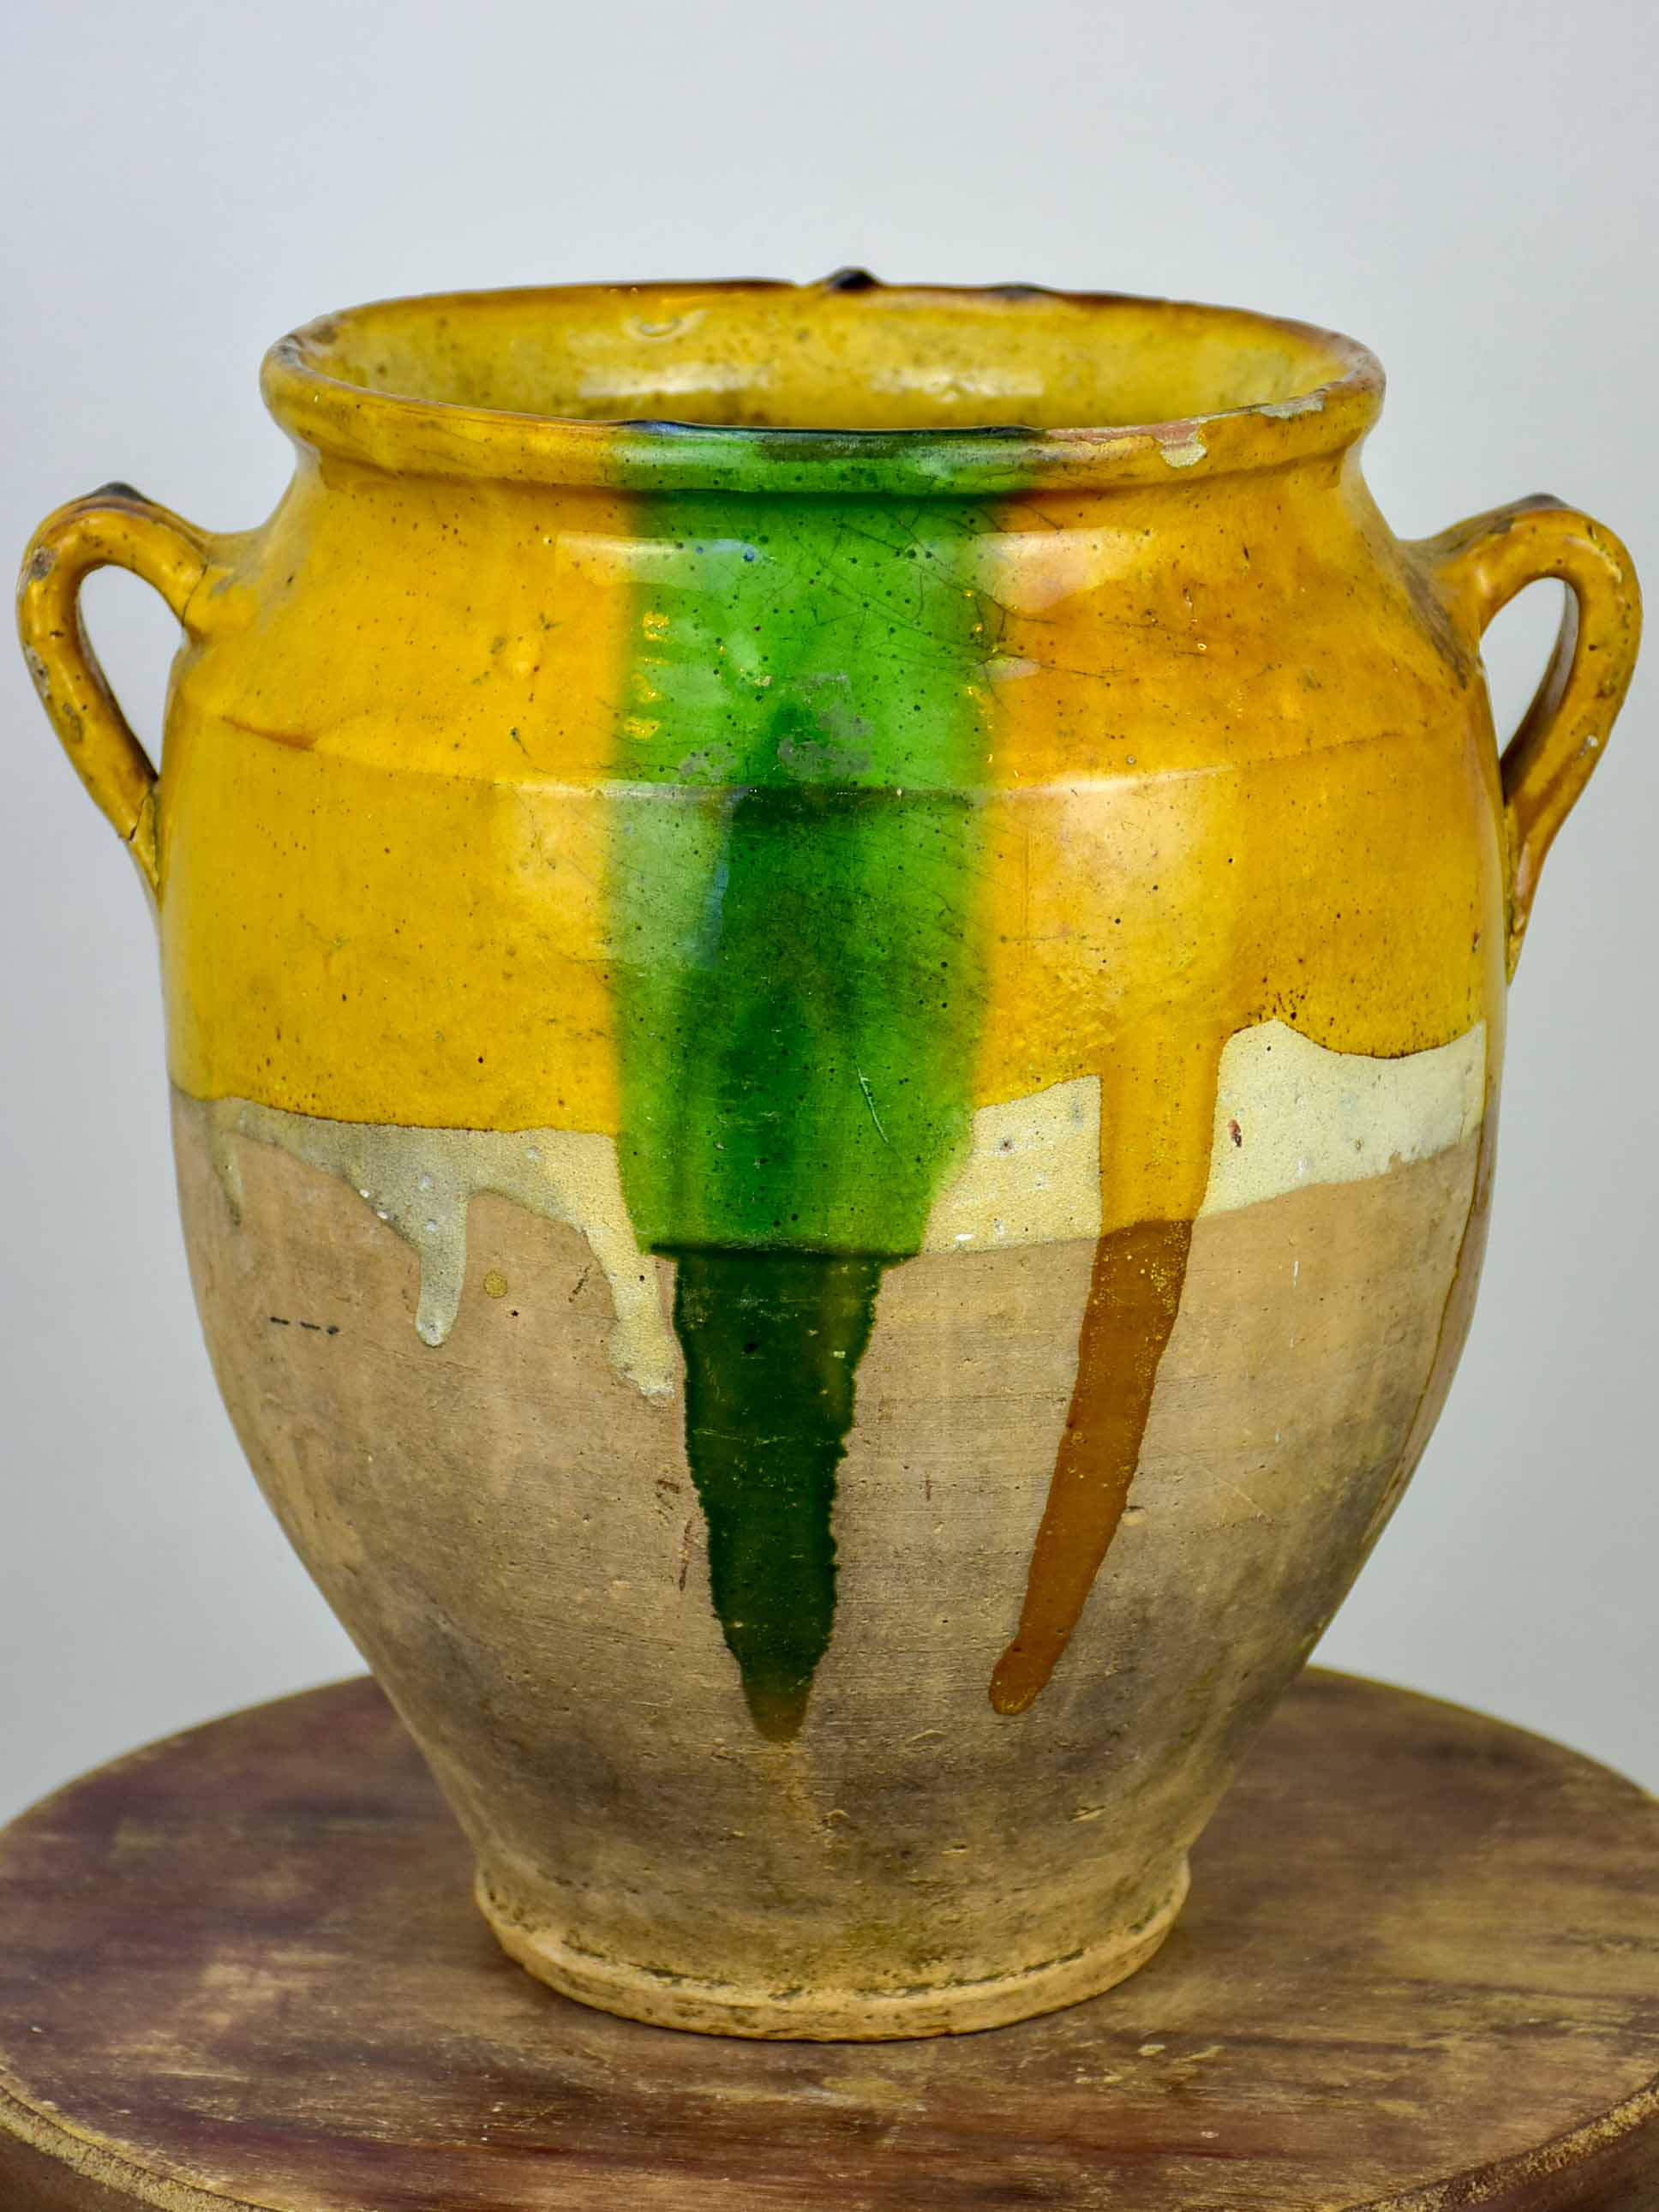 Antique French confit pot with orange and green glaze - 11 ½''